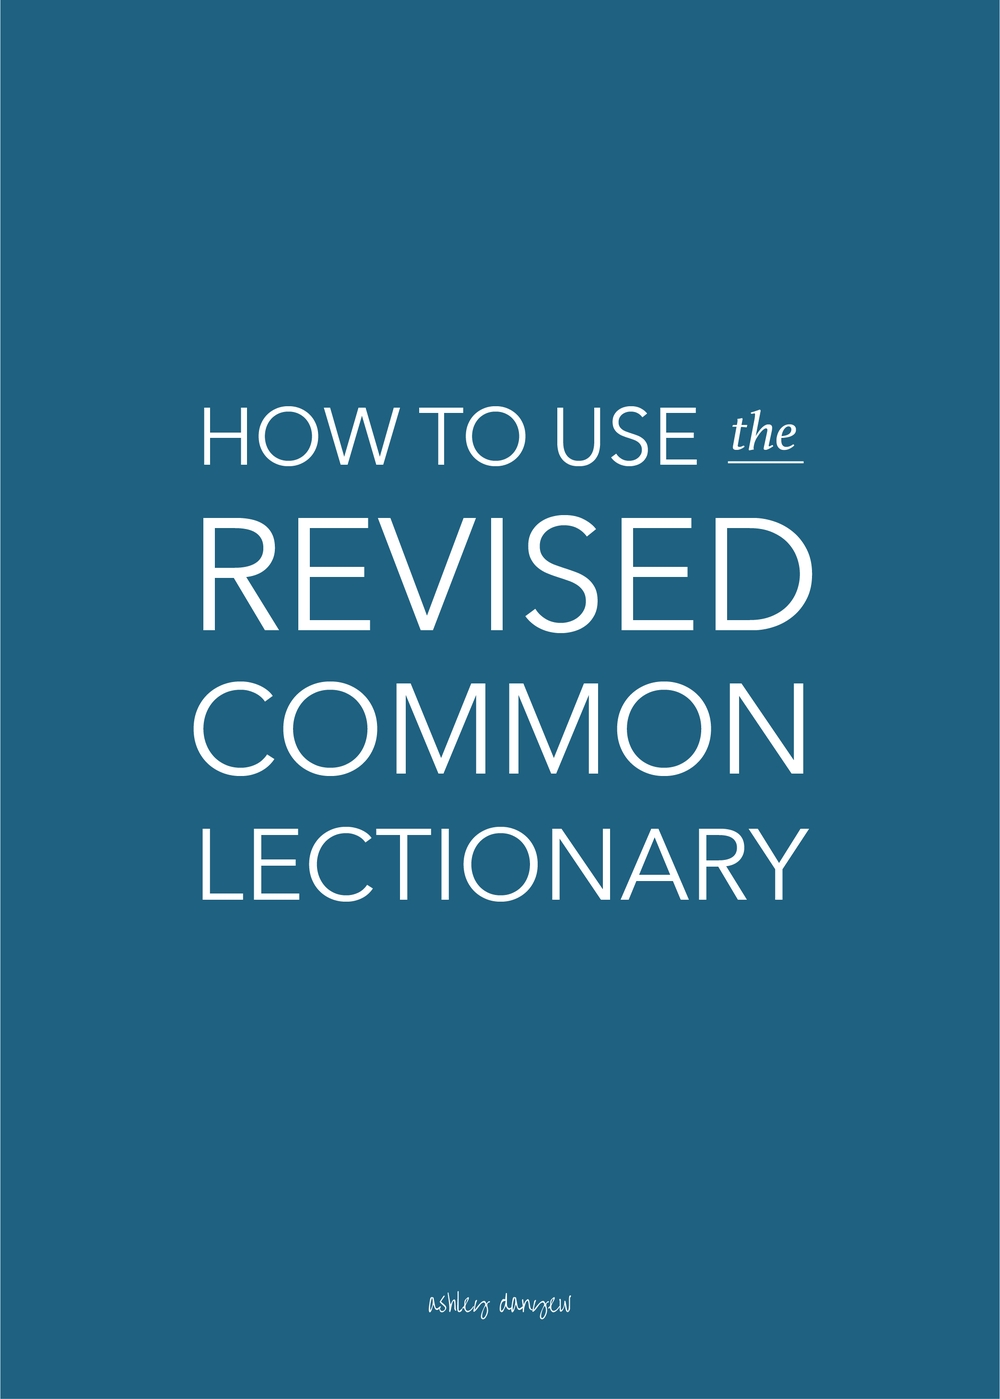 How To Use The Revised Common Lectionary | Ashley Danyew  United Methodist Lectionary For Lent